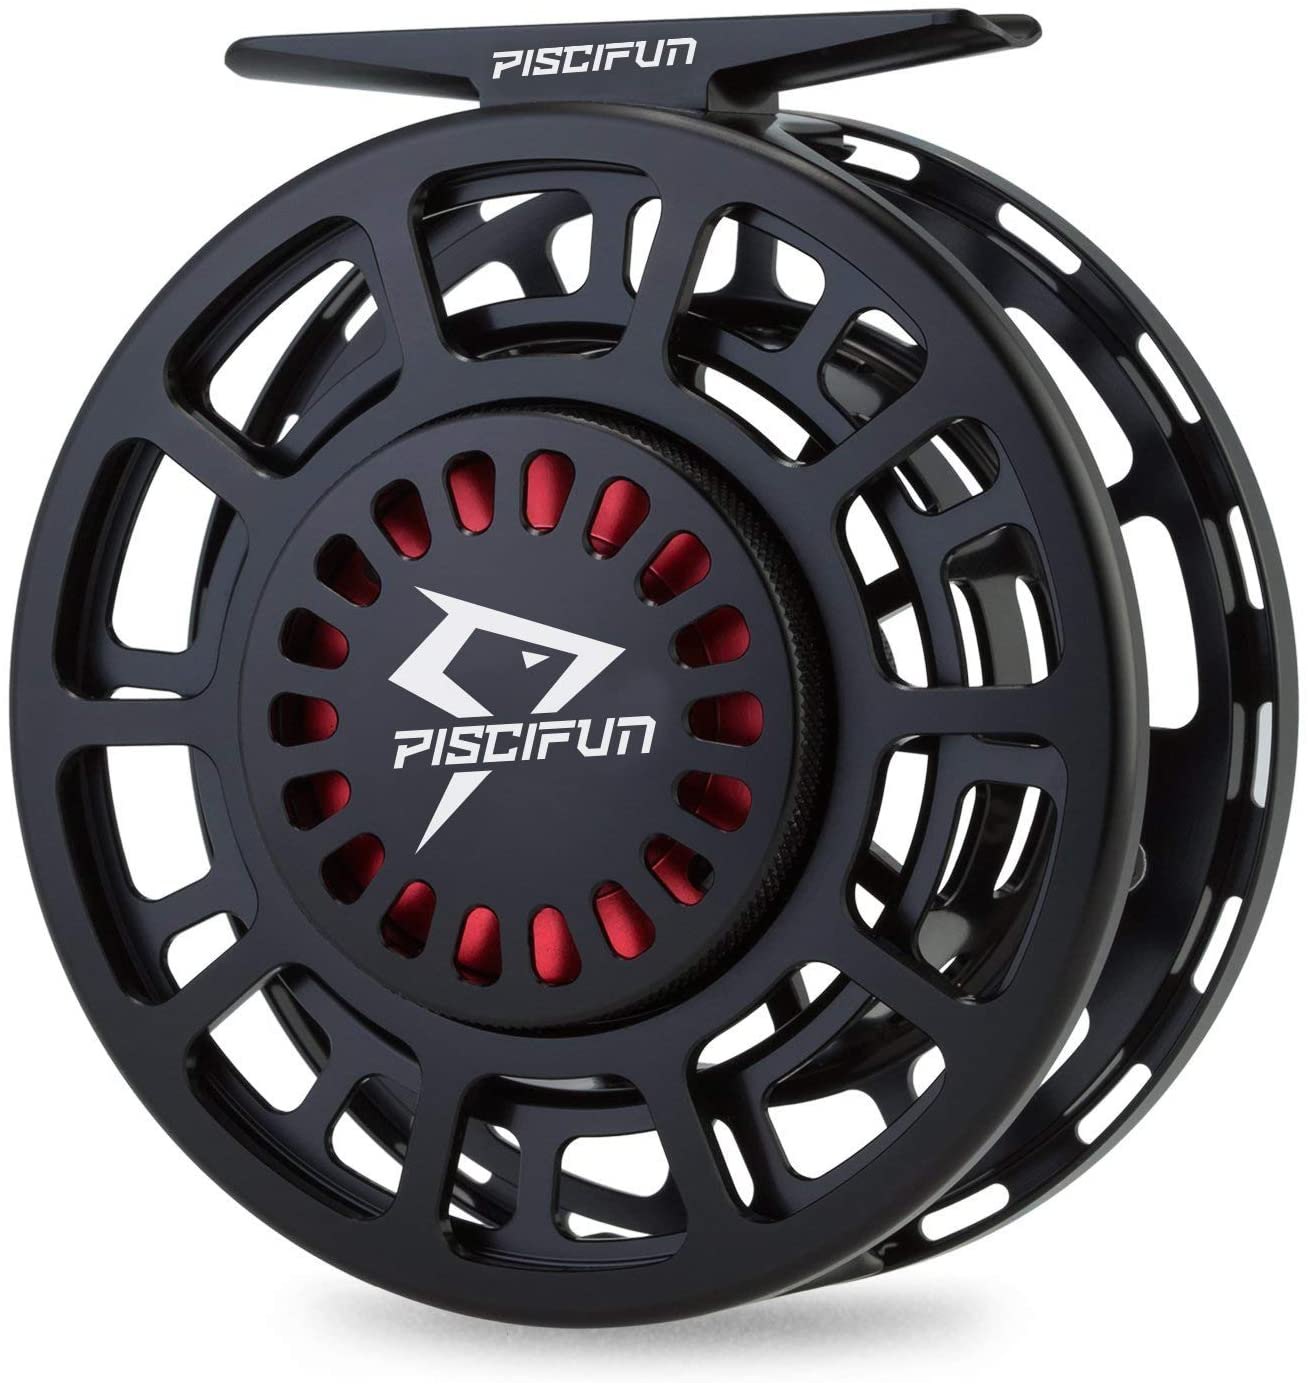 Best Fly Fishing Reel : Piscifun Platte